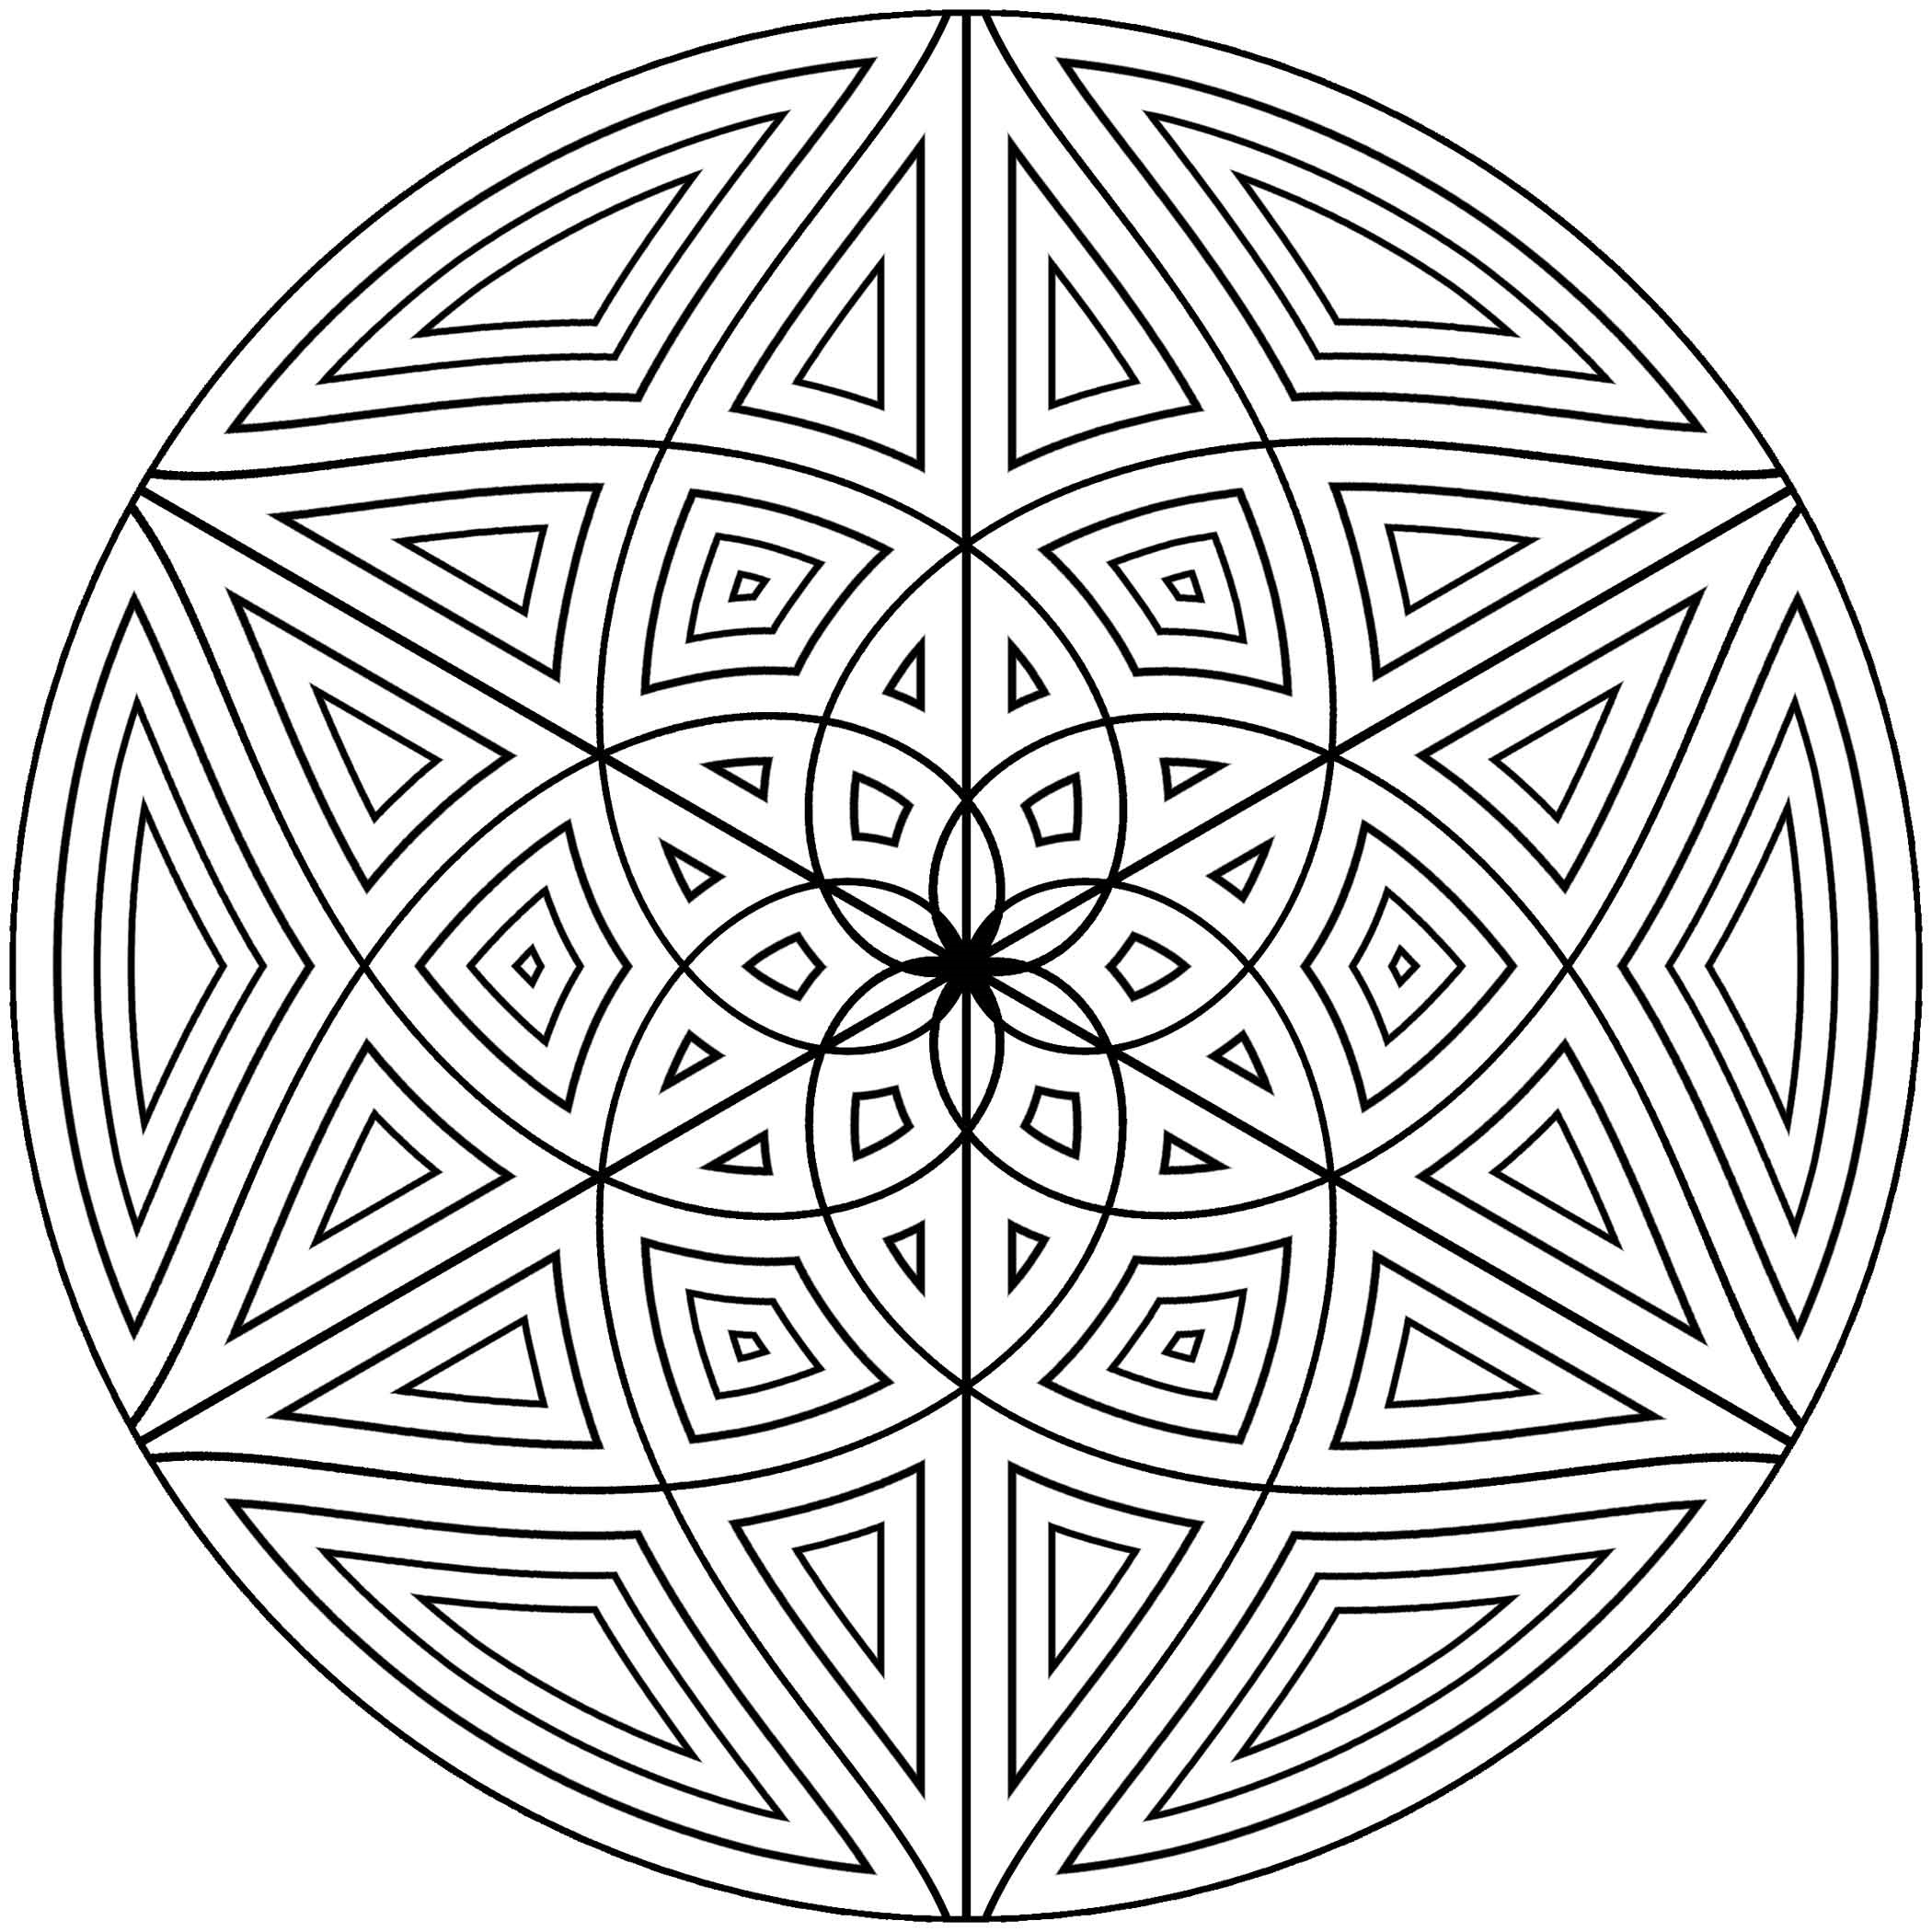 coloring patterns pages lotus pattern coloring page free printable coloring pages patterns coloring pages